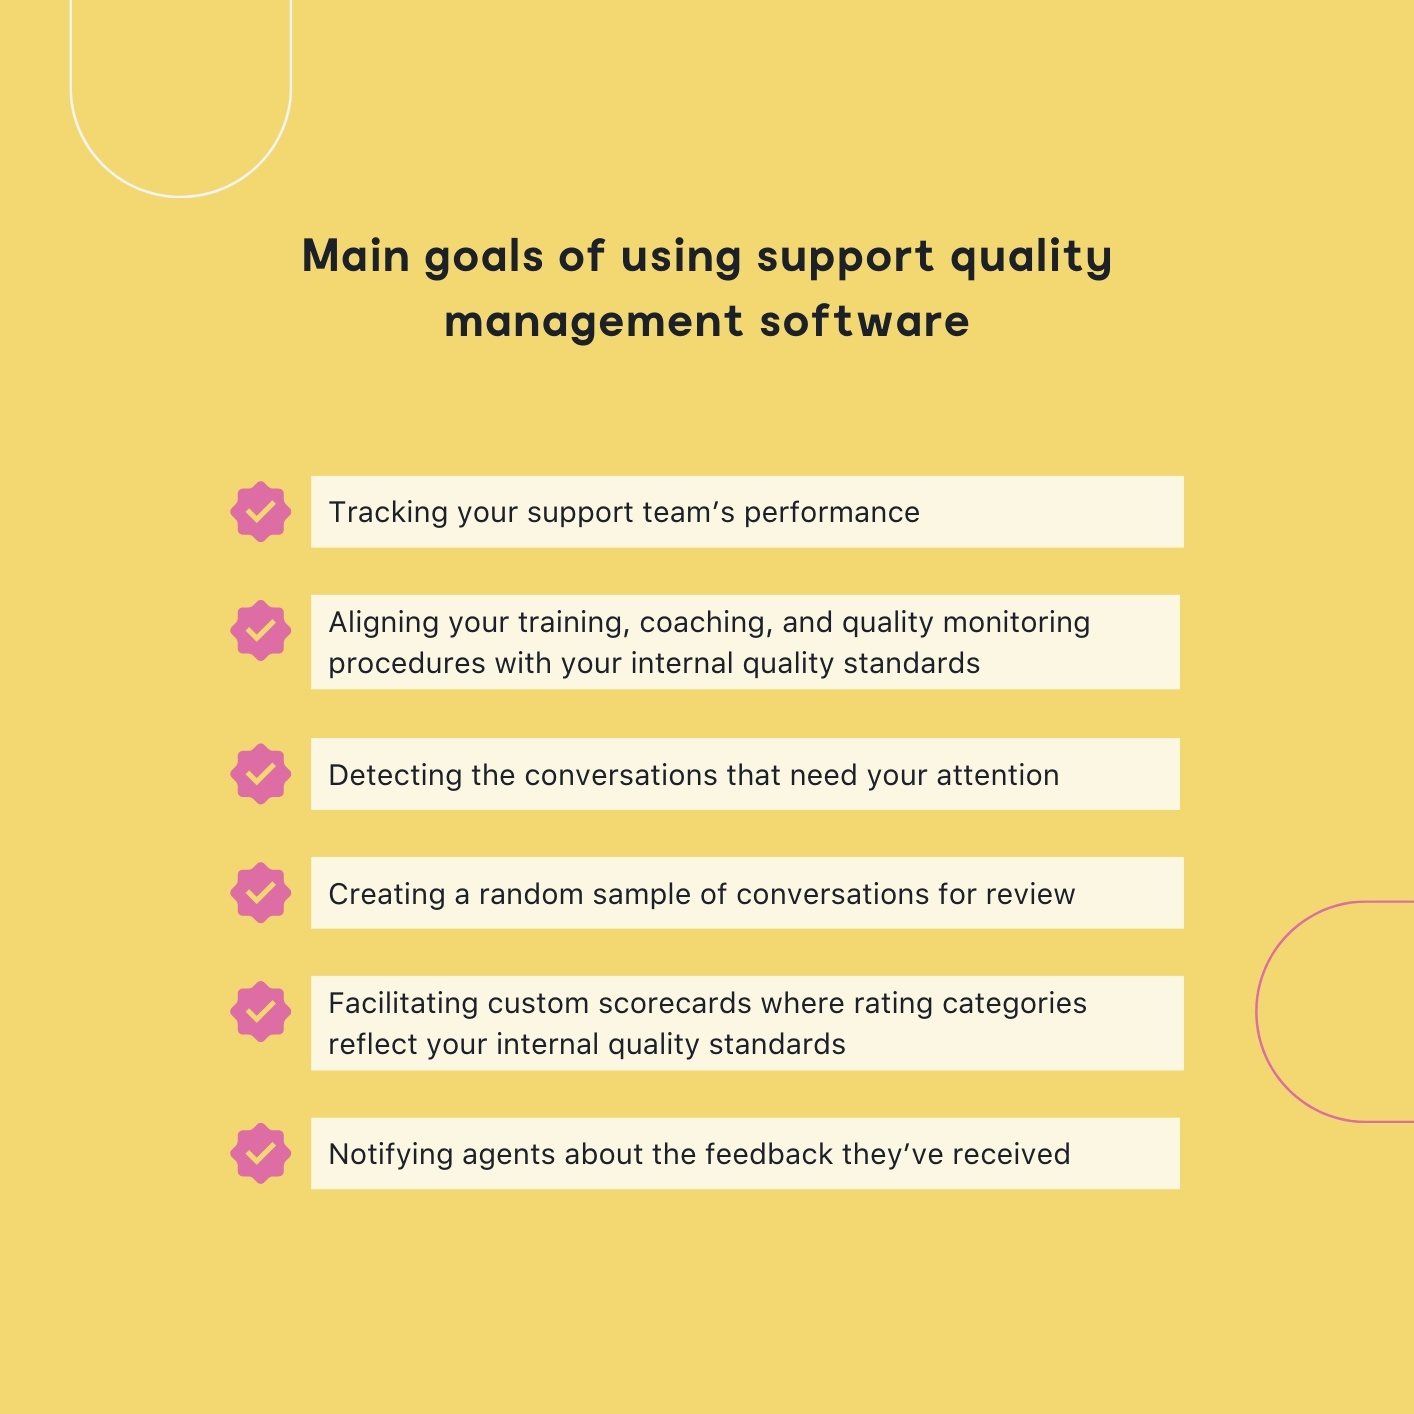 goals of using support quality management software